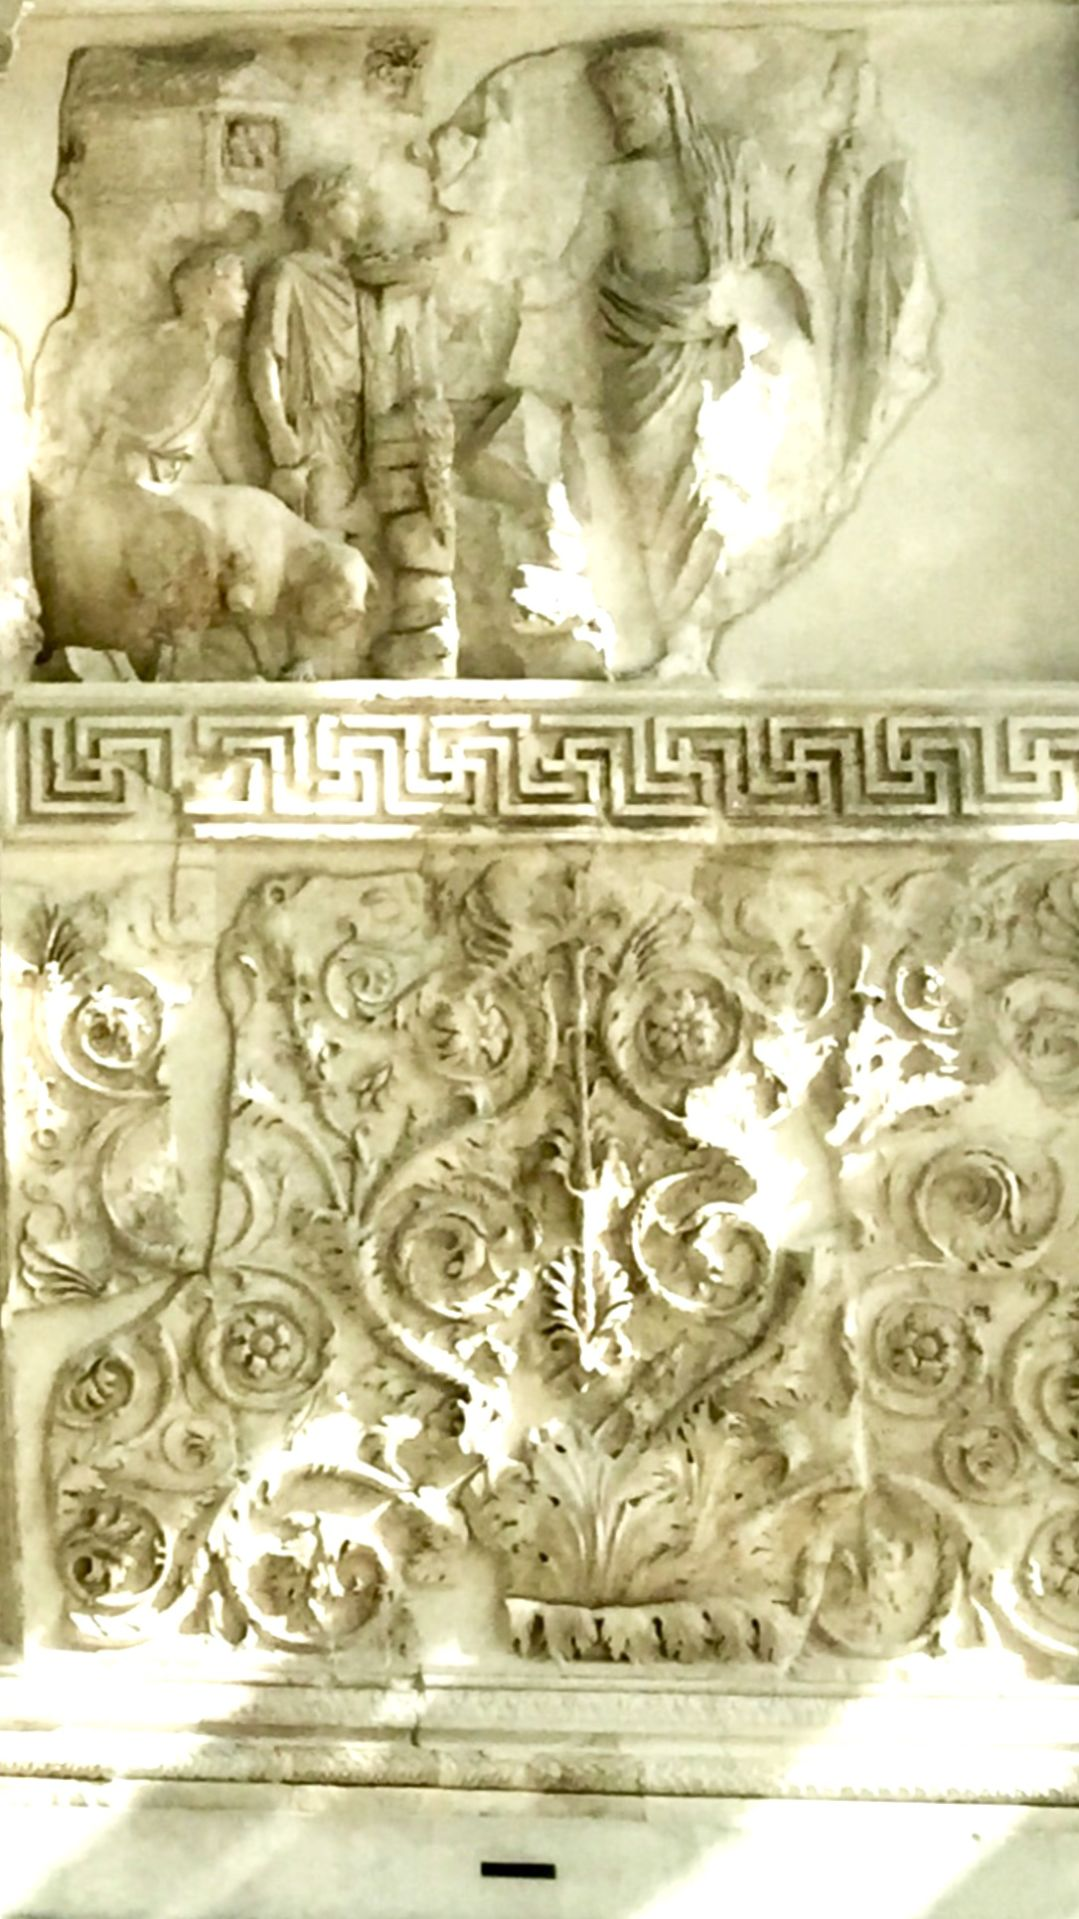 A frieze on the side of the altar